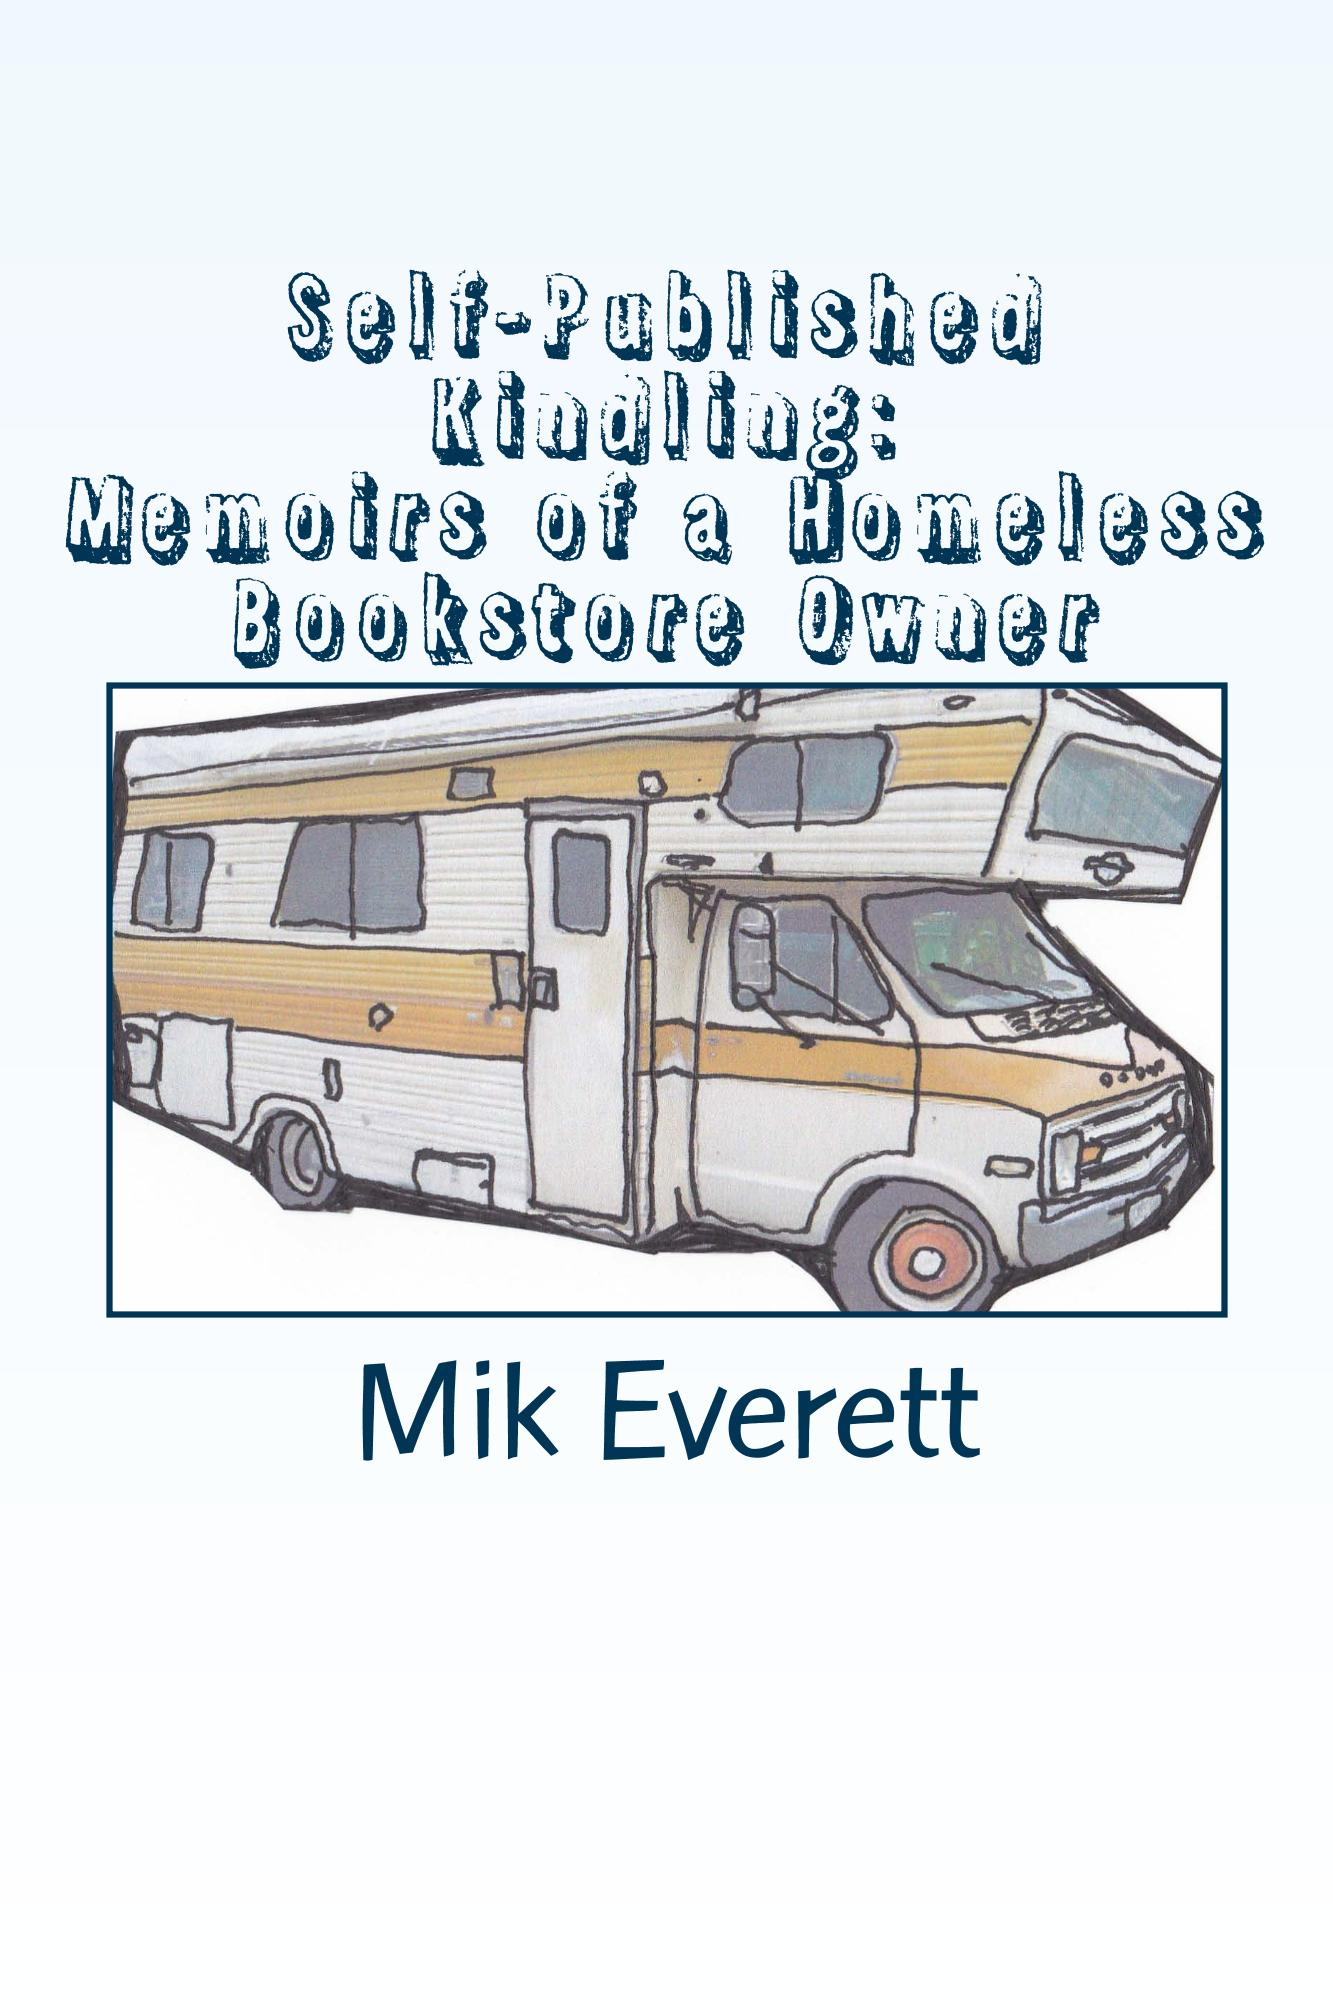 indieview with mik everett author of selfpublished